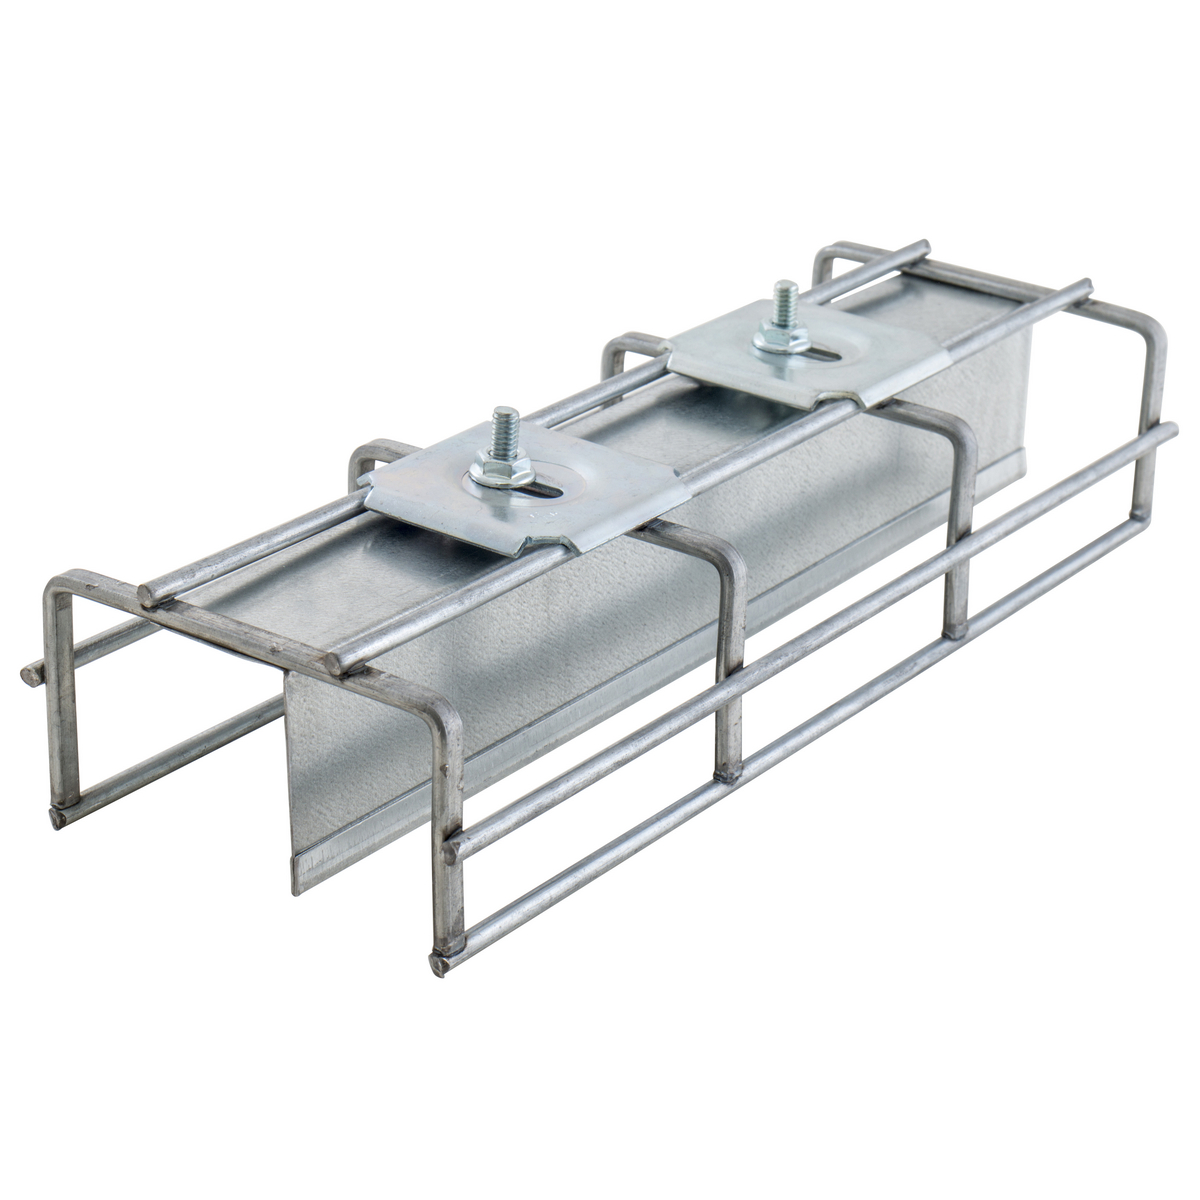 HBTNB | Wire Basket Tray Accessories | Wire Basket Tray | Wire/Cable ...